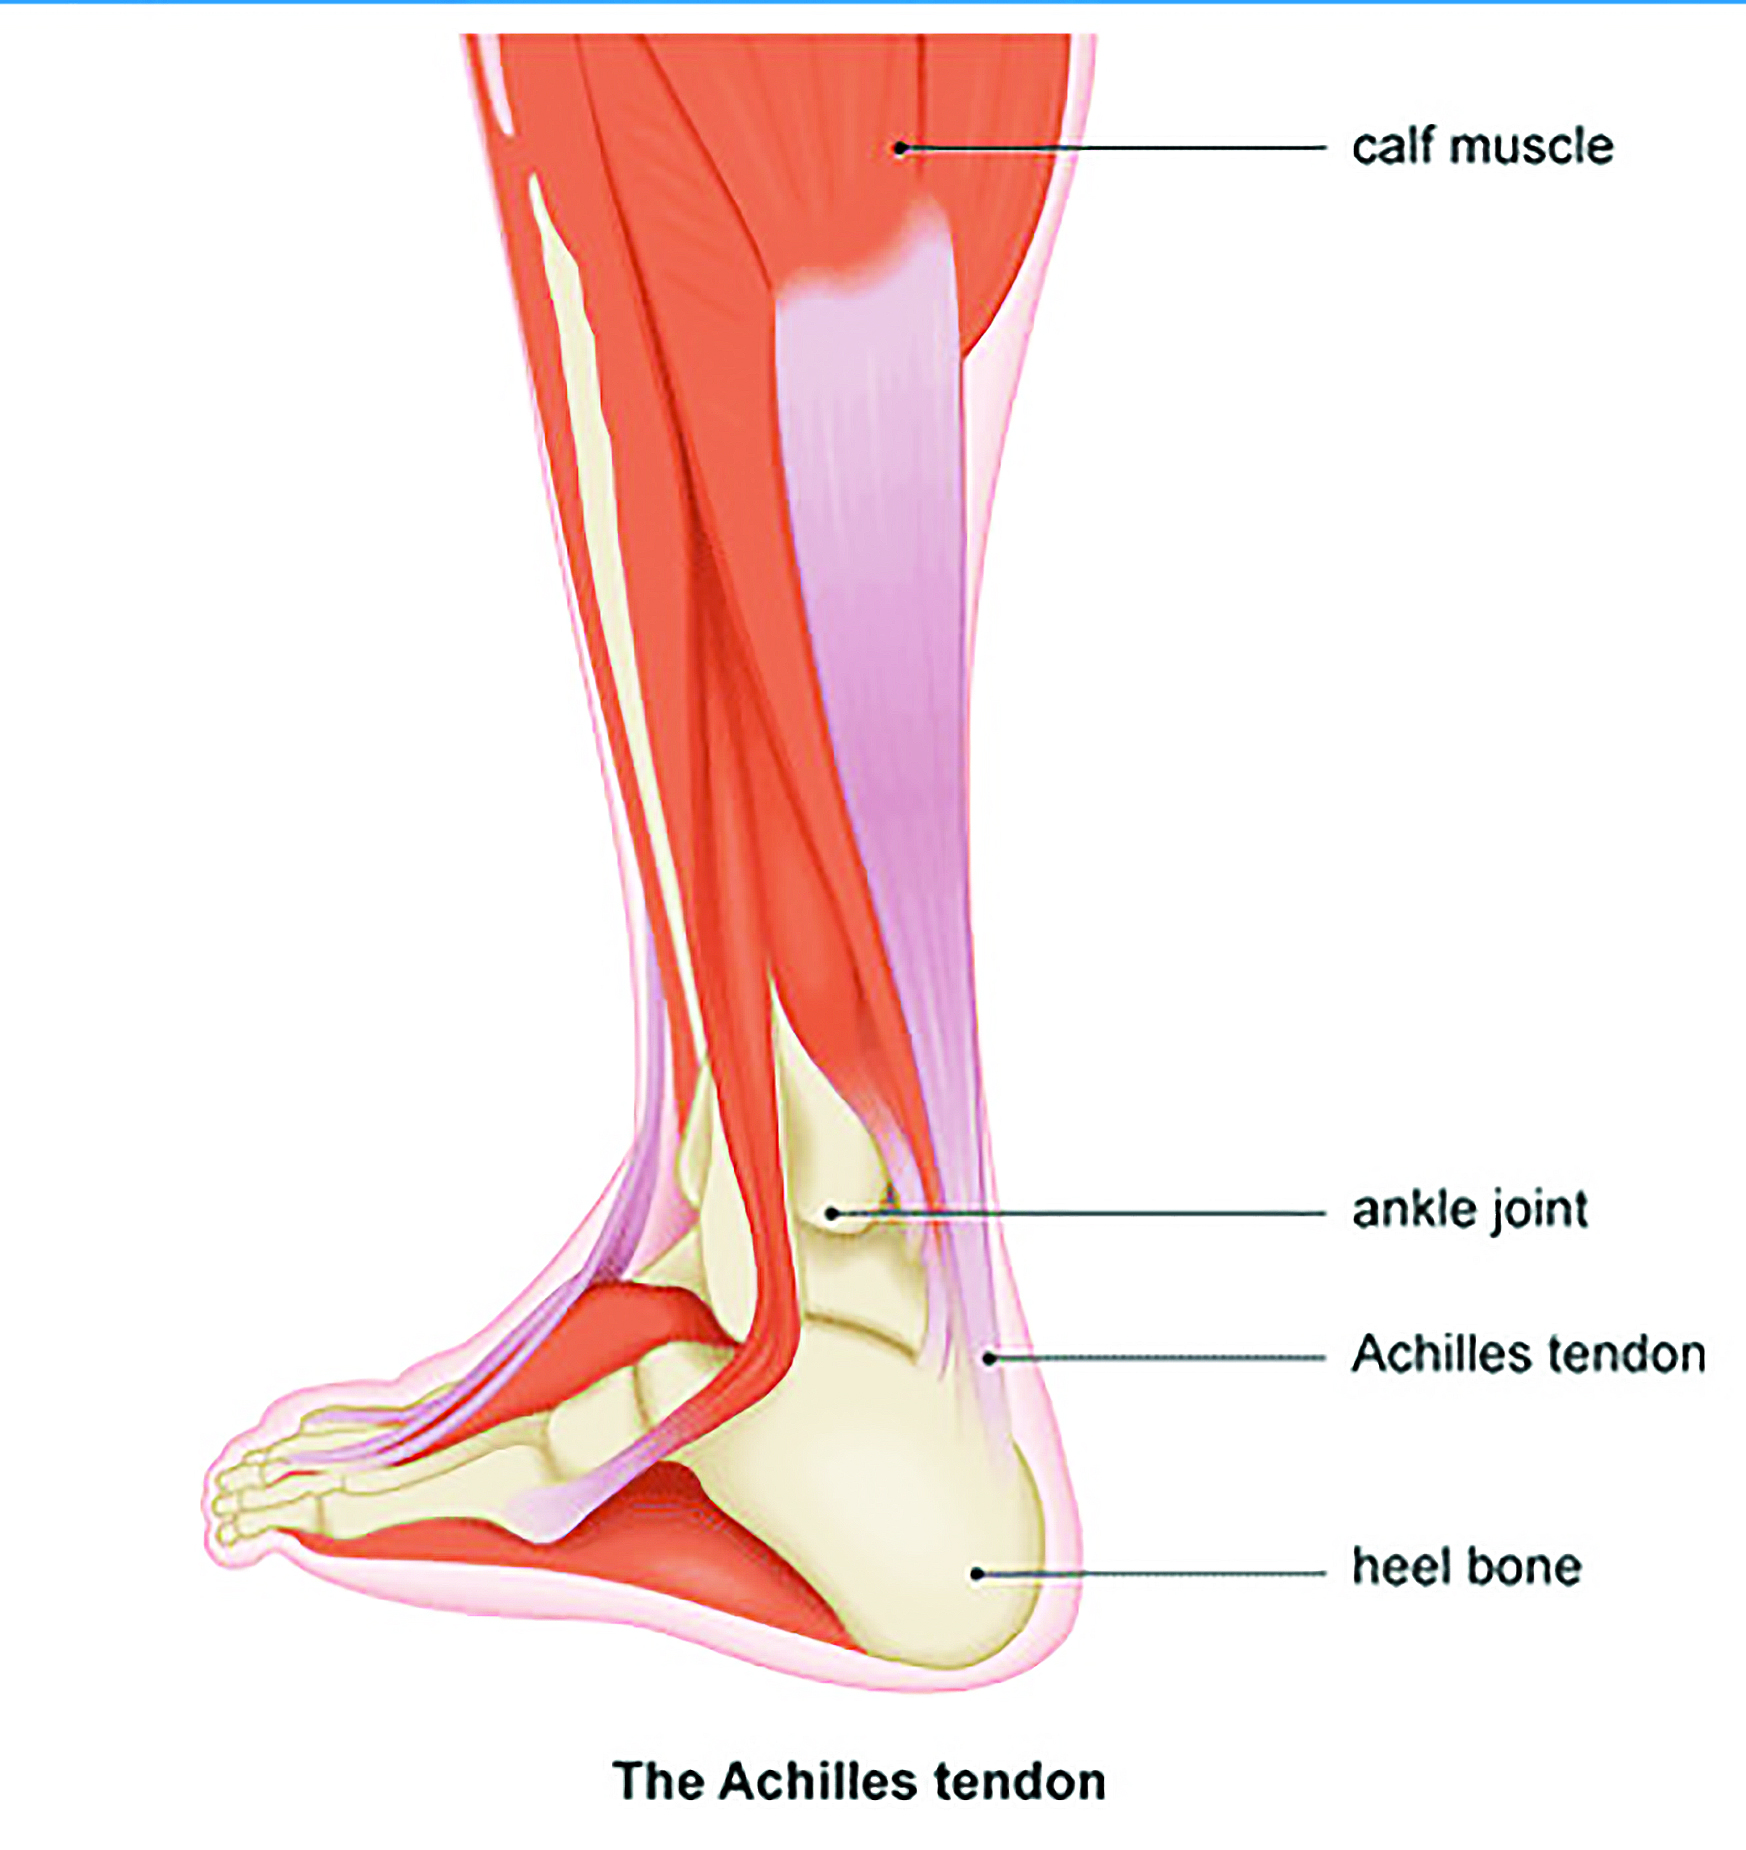 Treatment options for chronic Achilles tendon disorders